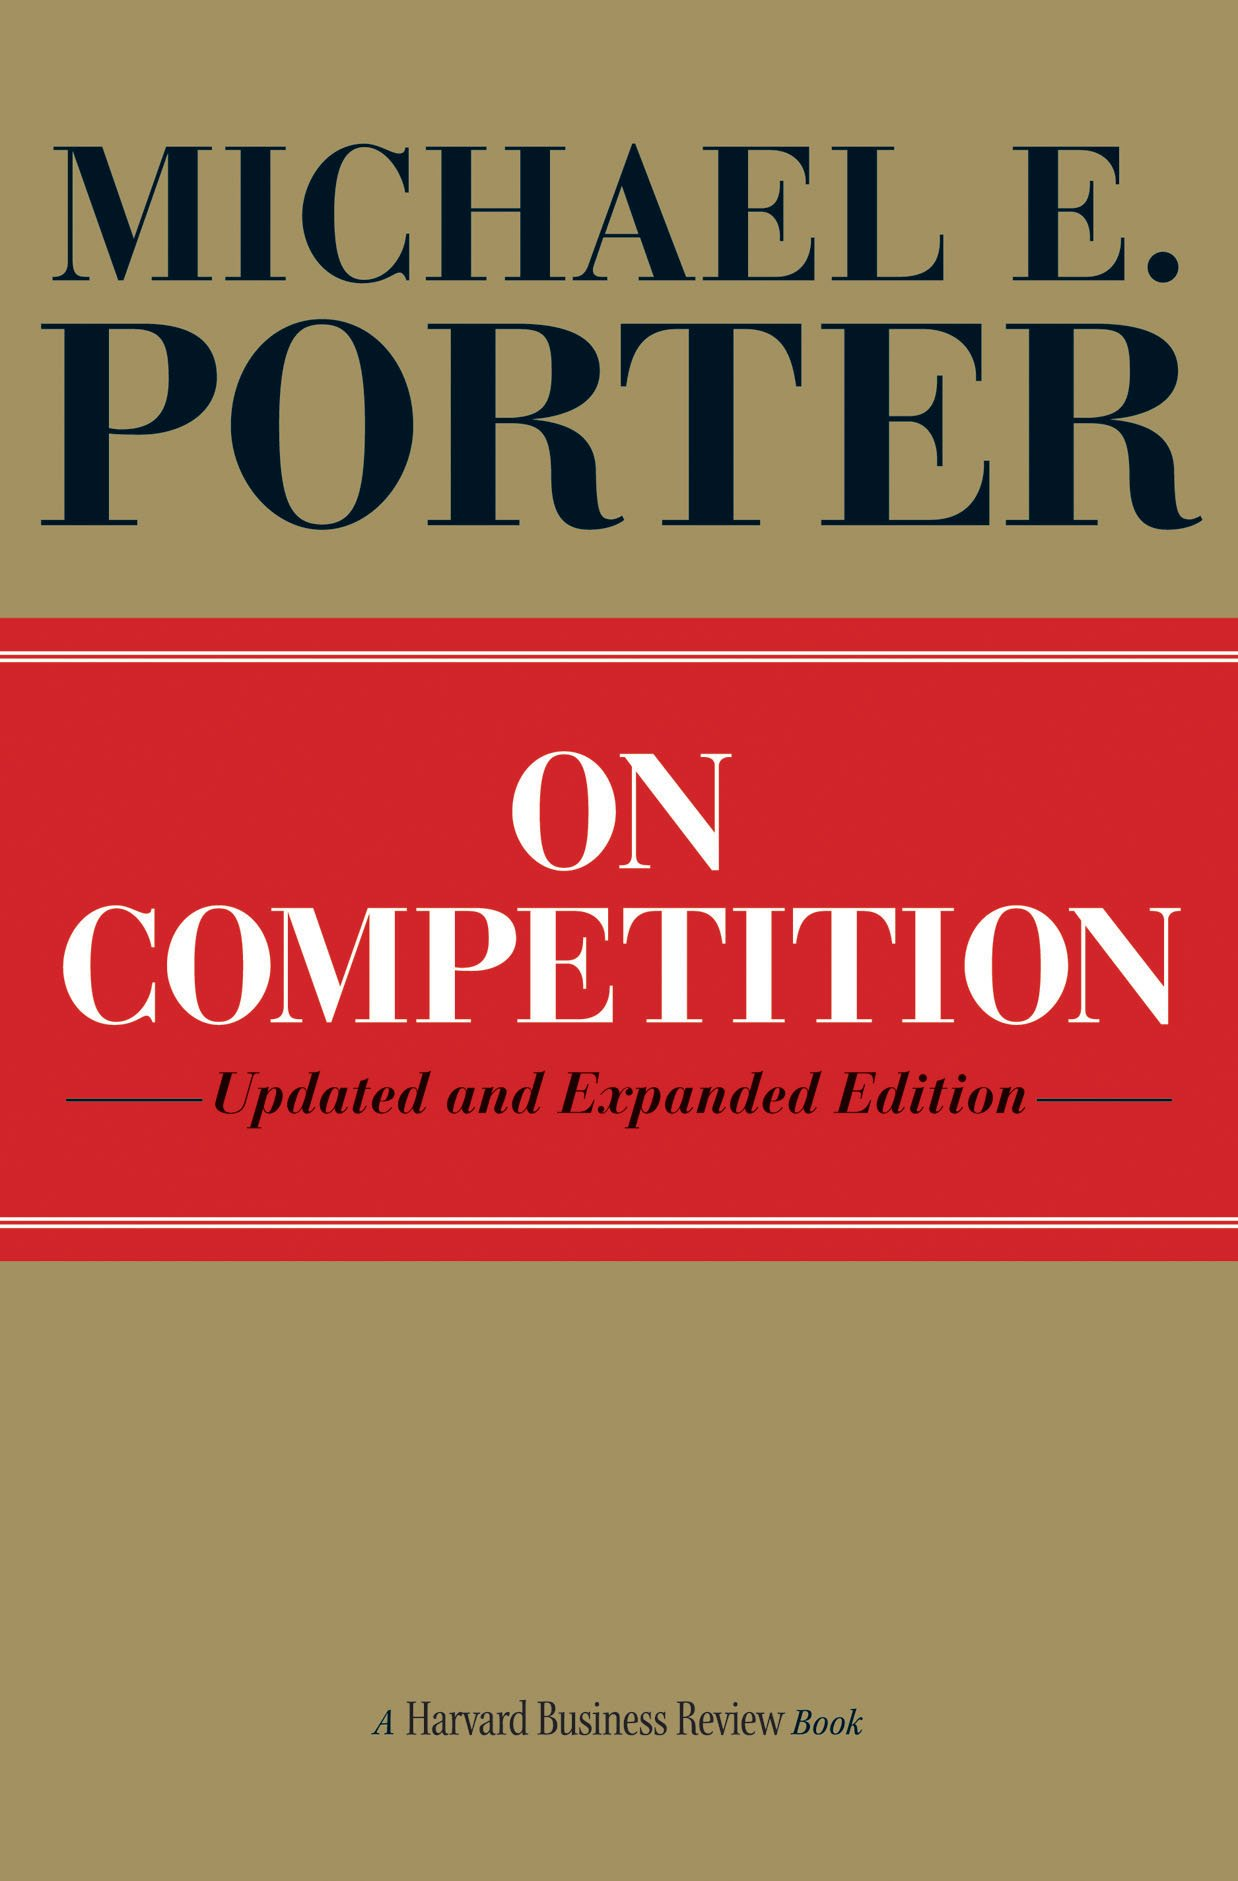 On Competition, Updated and Expanded Edition: Michael E